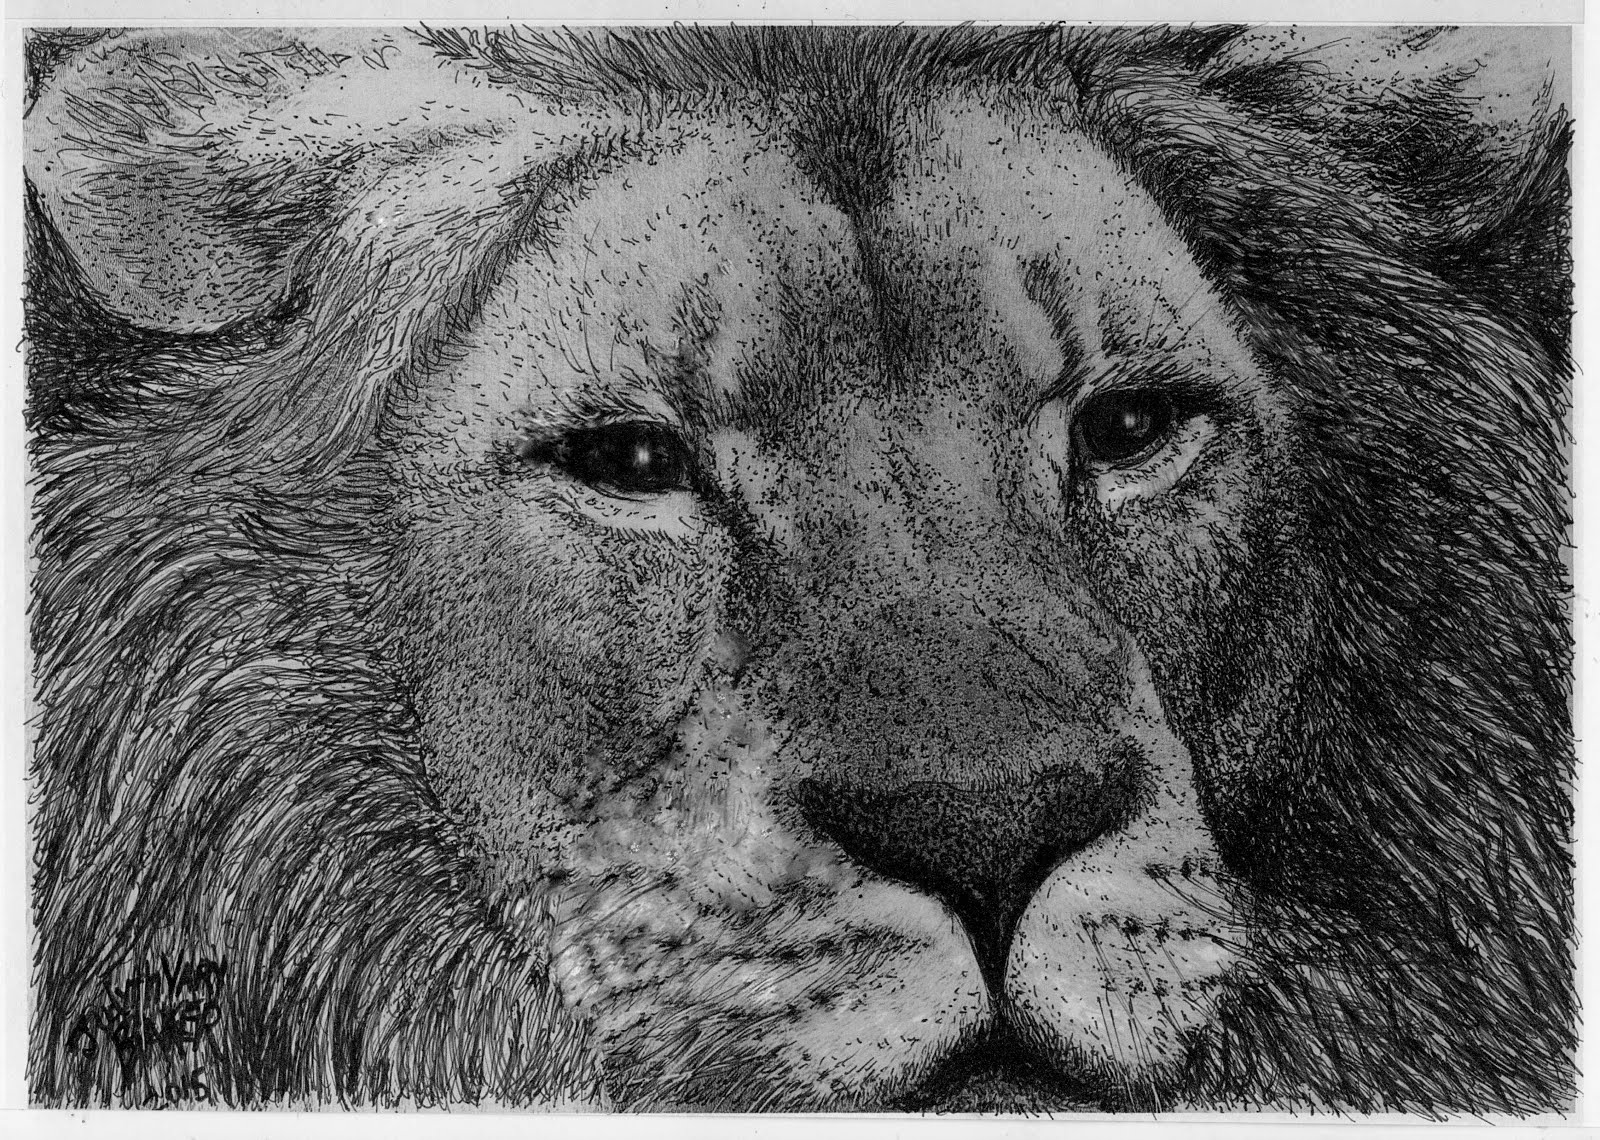 """Lion"": to Purchase, see ""Donate to the Cause"" Below..."